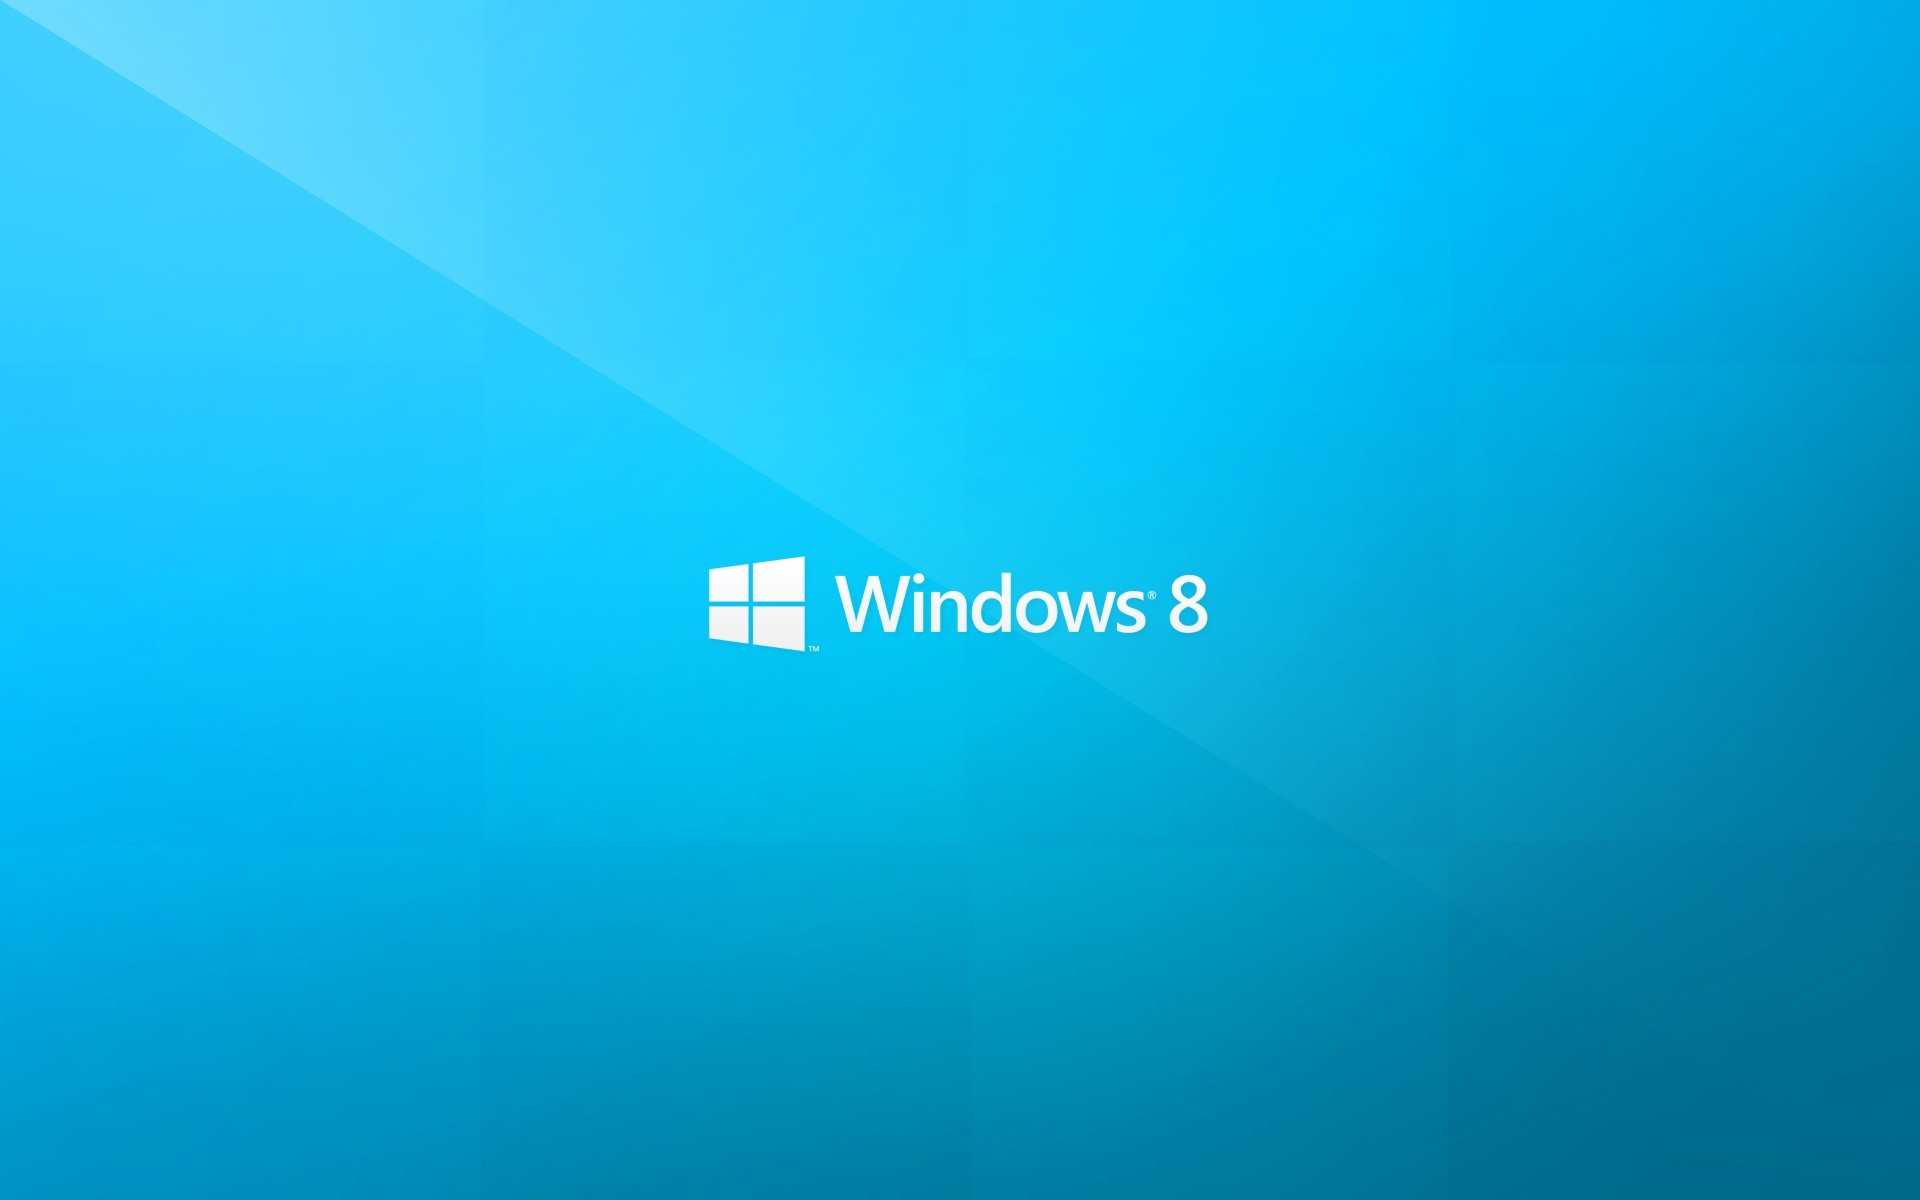 Logo Windows 8 operating system